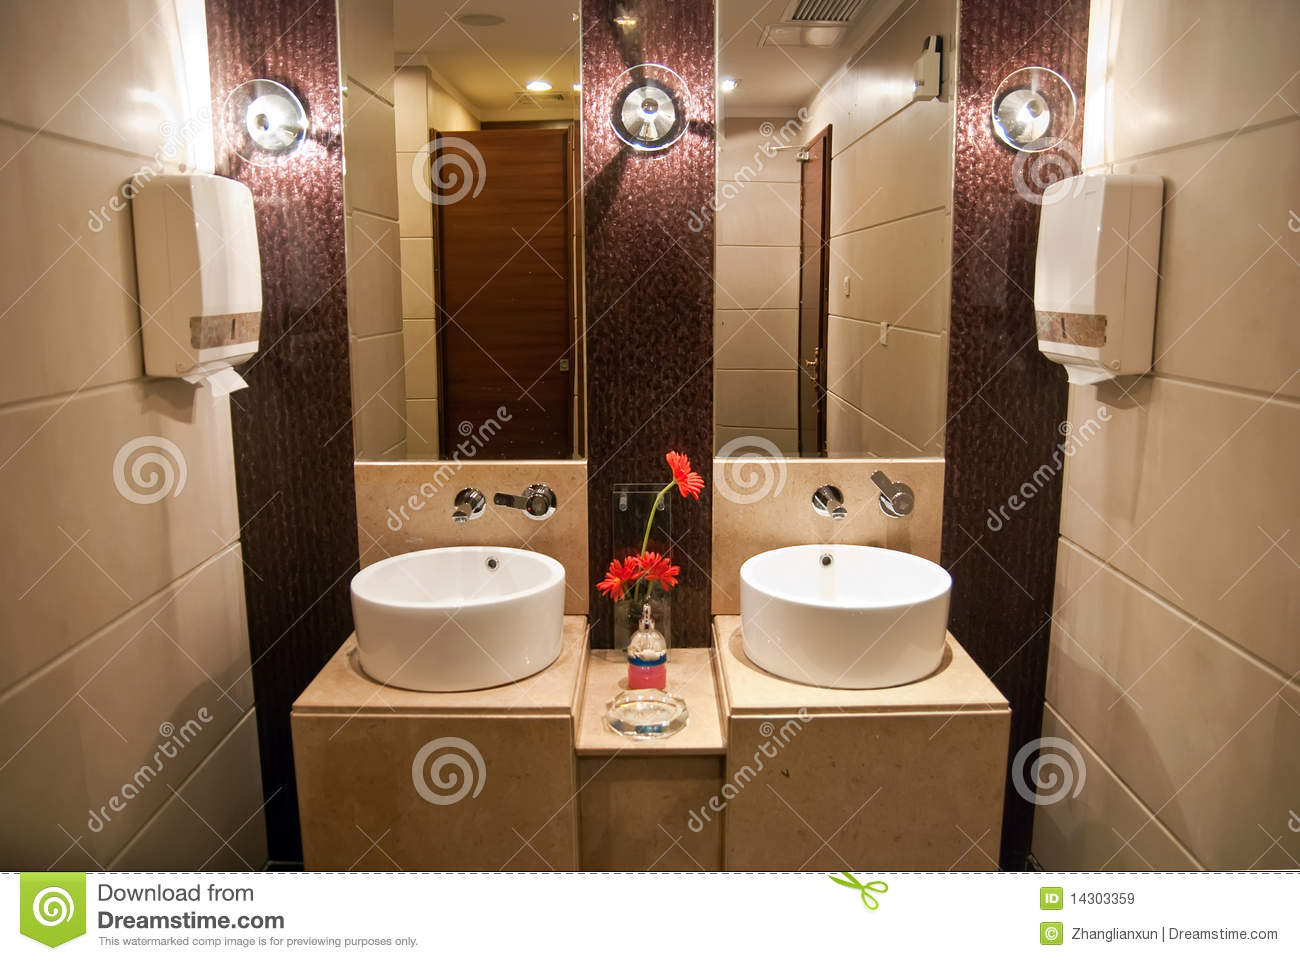 Luxury hotel public toilet stock image Image of house  14303359